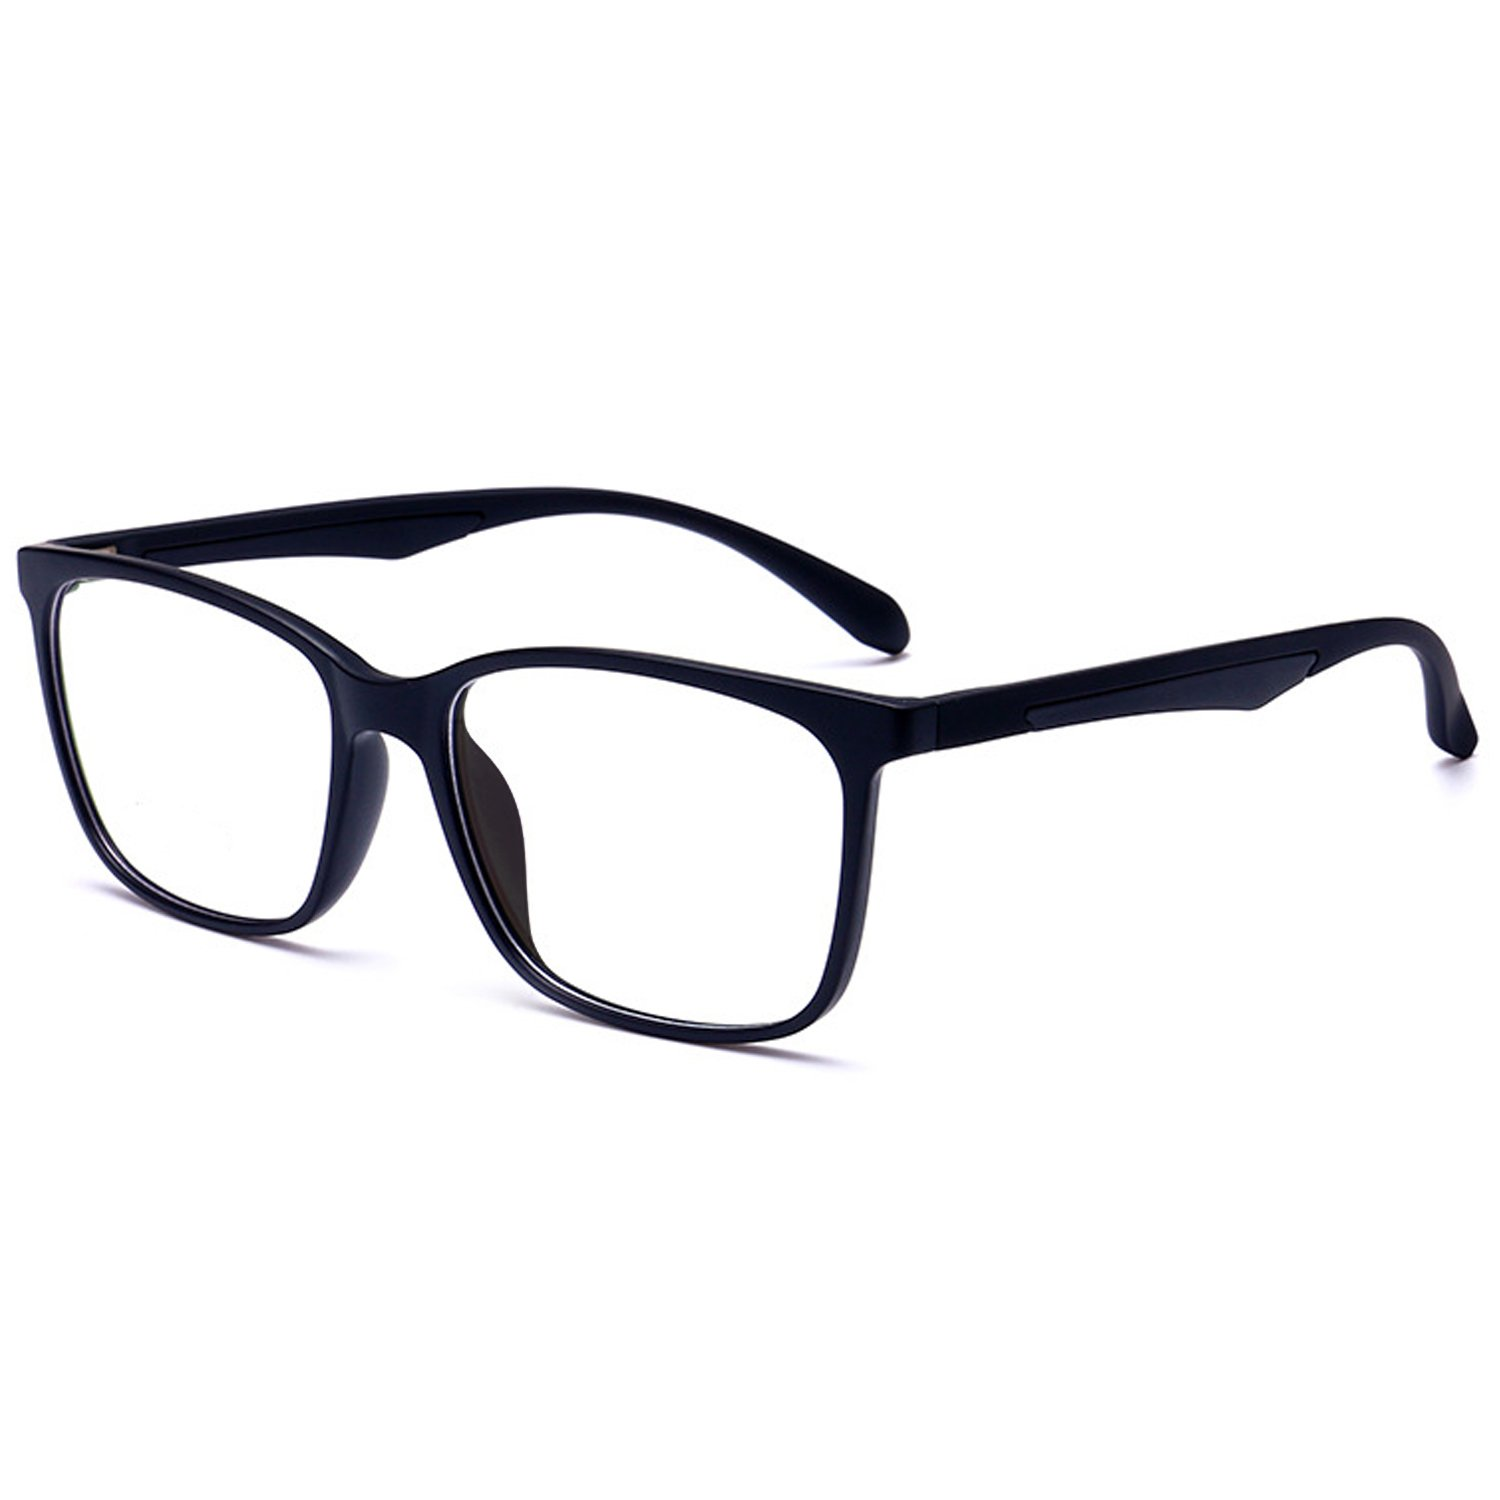 064f5b9990b6 Best Rated in Computer Blue Light Blocking Glasses   Helpful ...